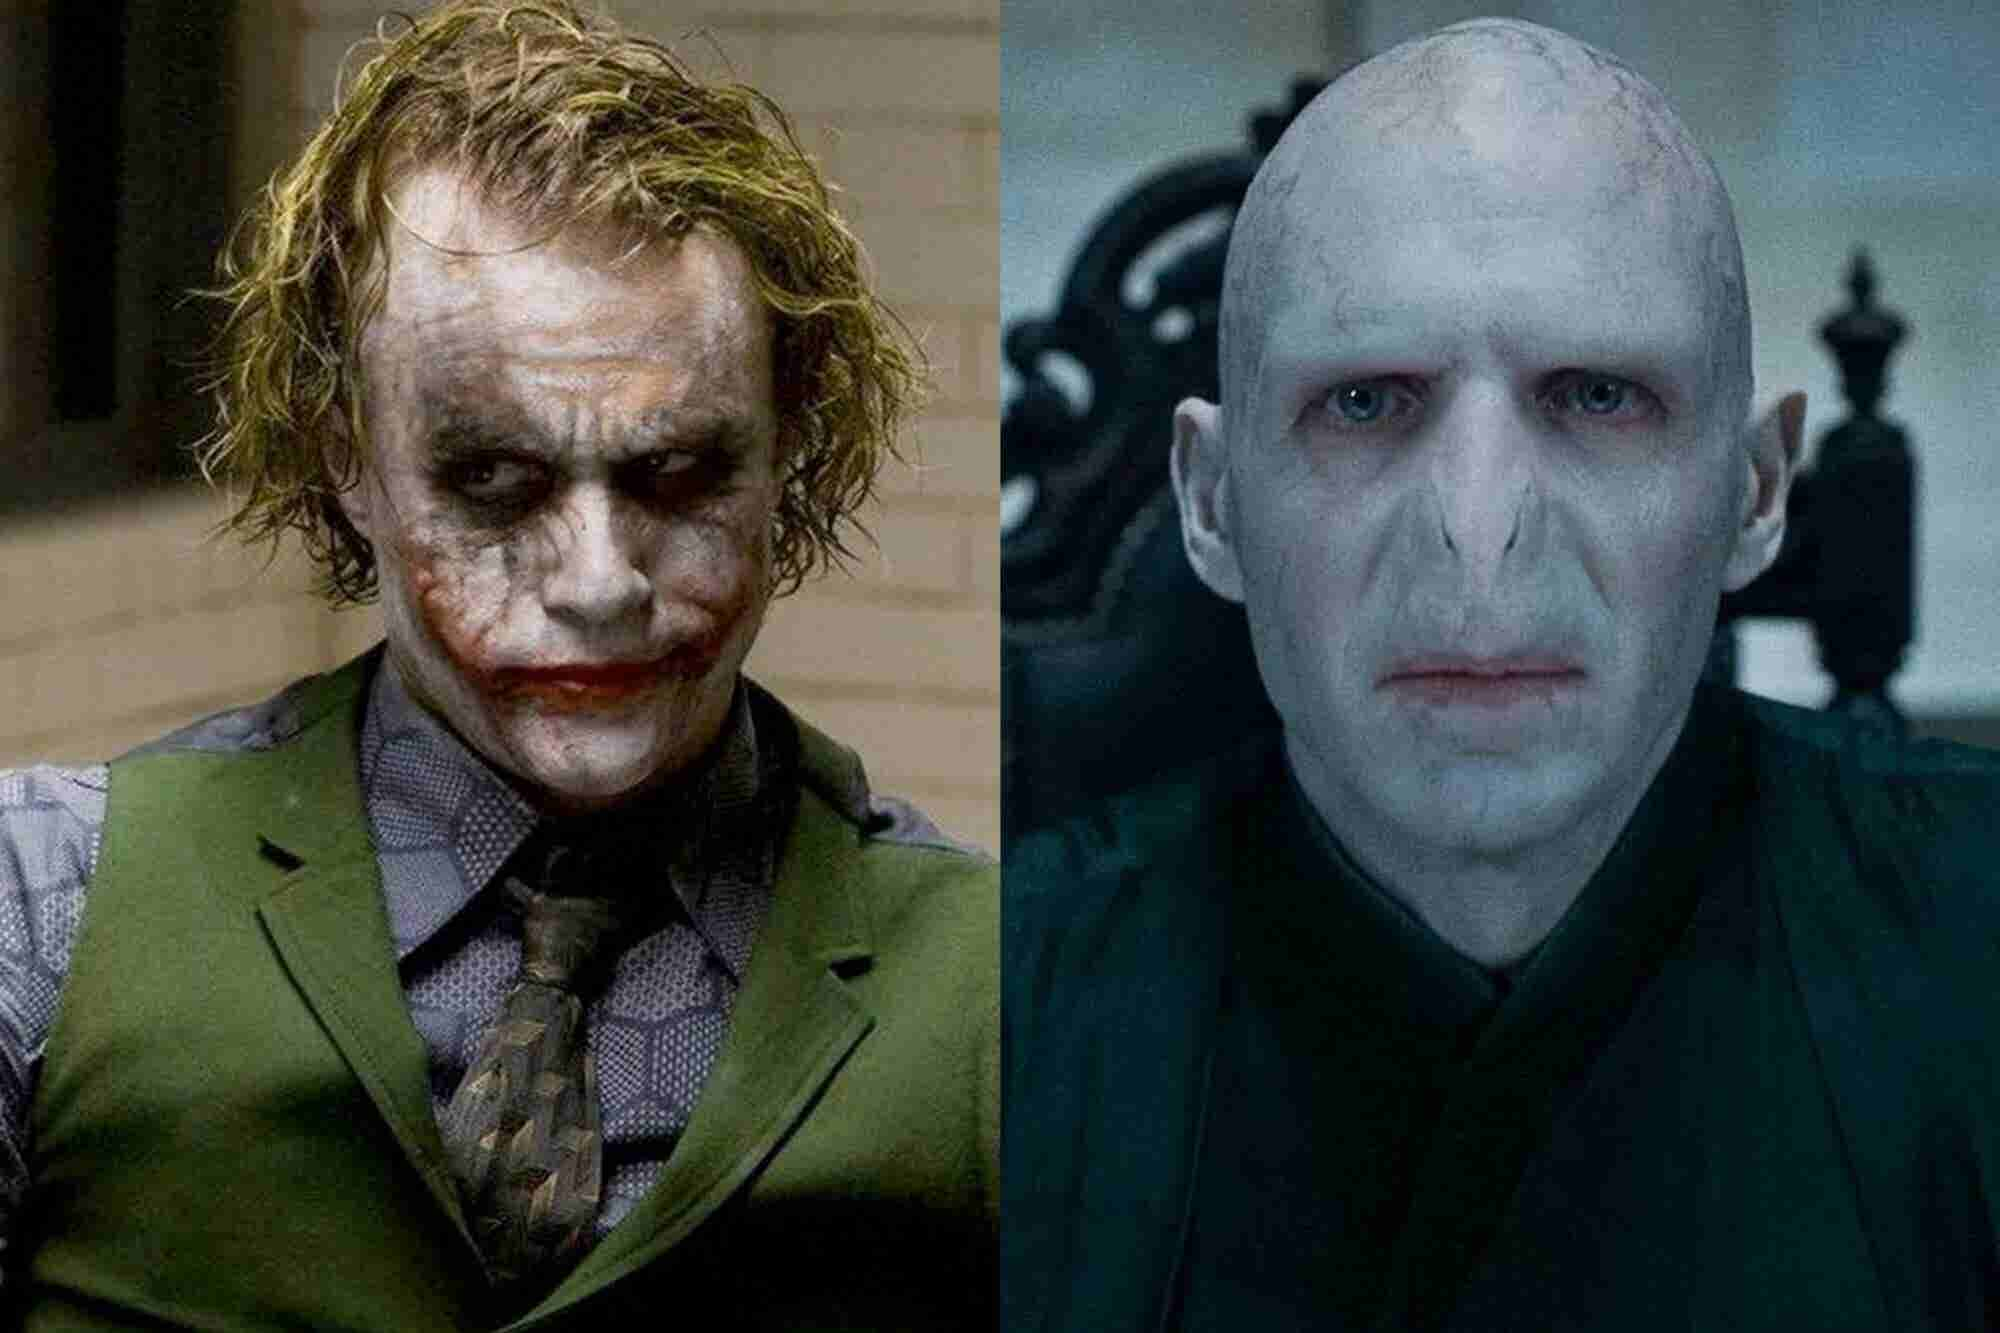 How These 8 Legendary Movie Villains Taught Us About Work, Entrepreneurship, Complexities & Leadership